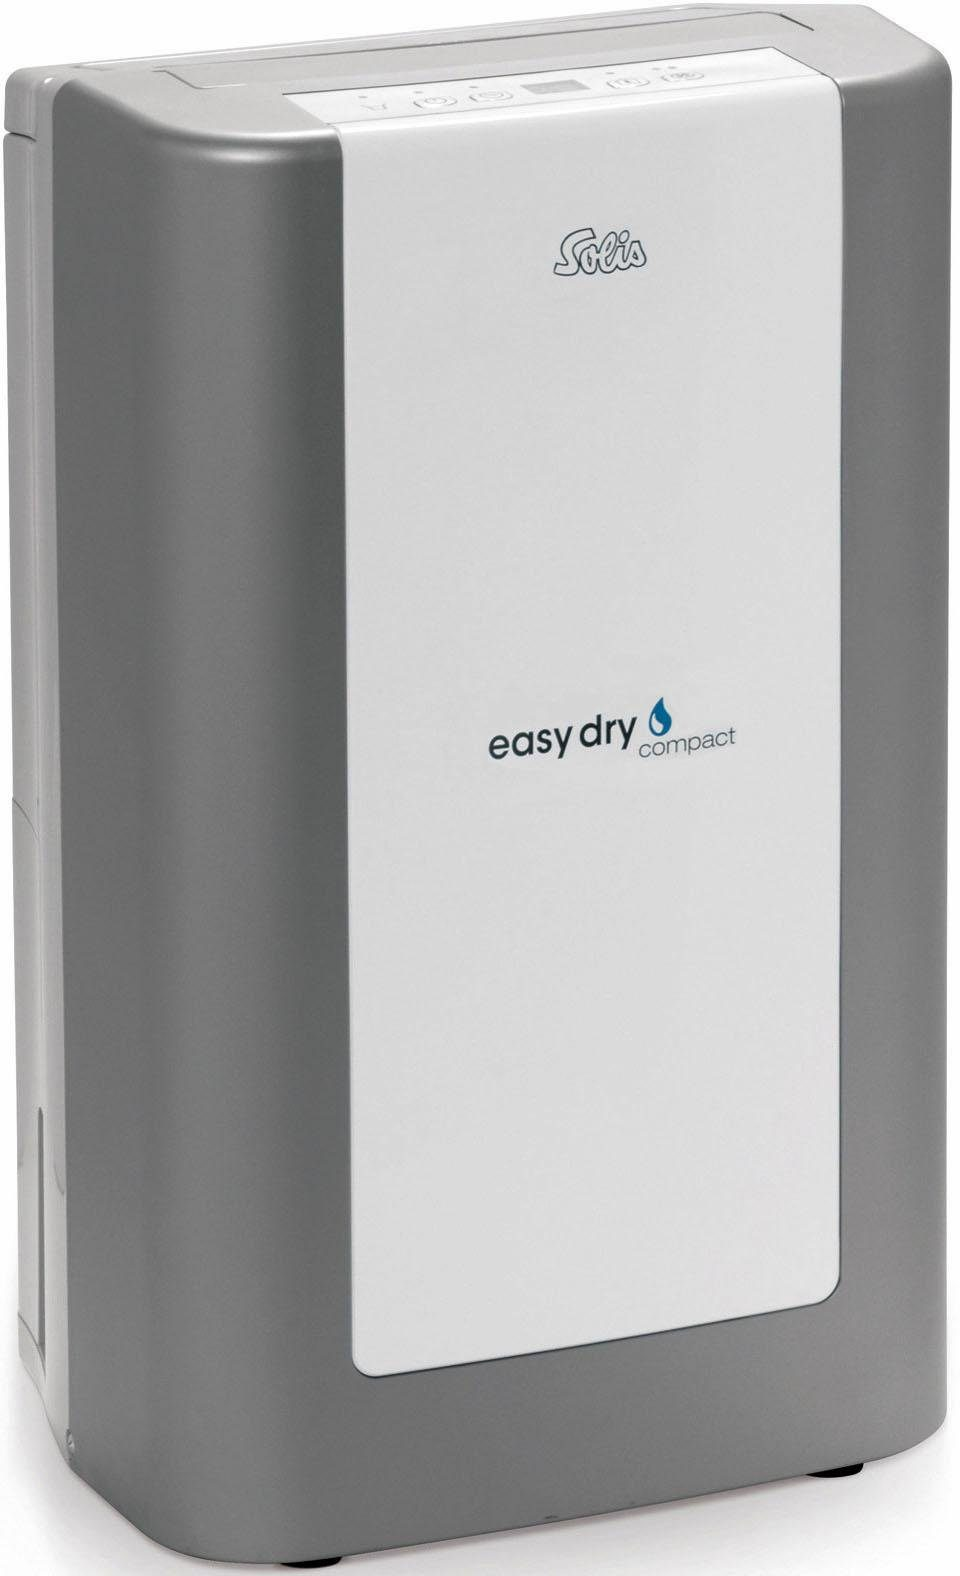 Solis of Switzerland Entfeuchter SOLIS Easy Dry Compact, Typ 708